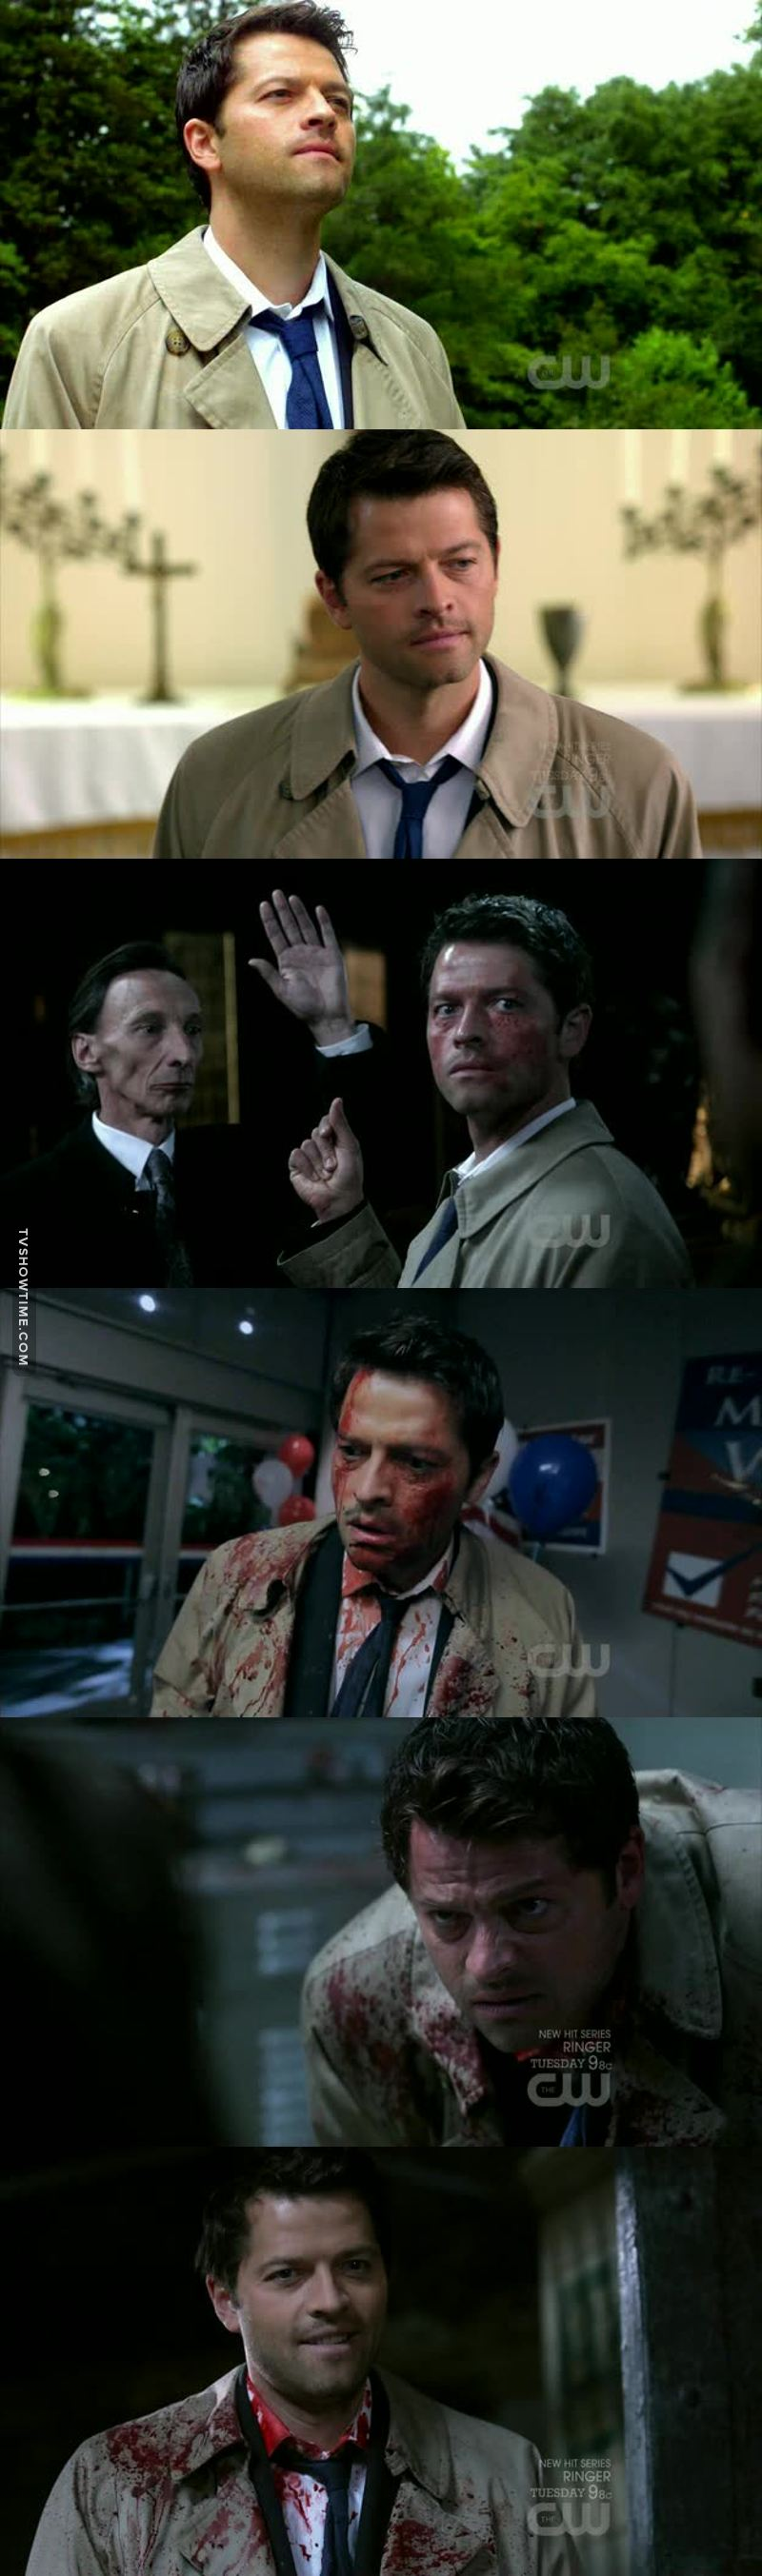 LET'S TAKE A MINUTE TO APPRECIATE THE ACTING OF MISHA COLLINS!!!